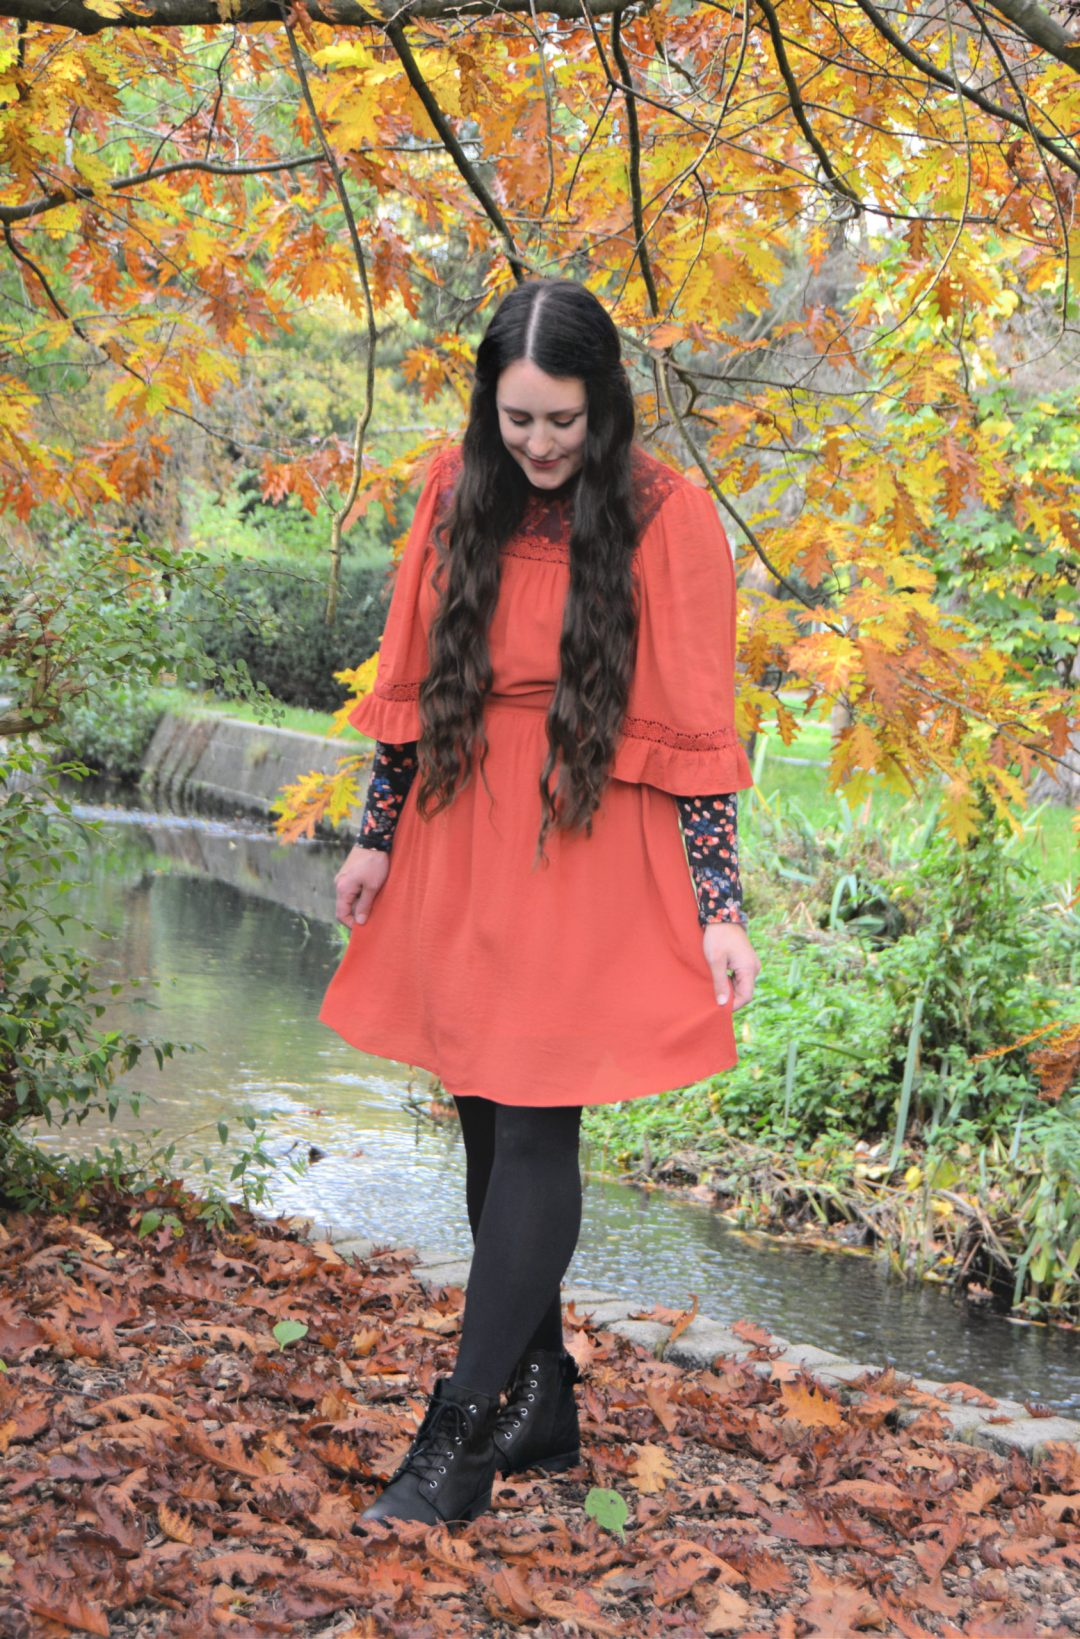 These Boots Were Made For Autumn - Hotter Blenheim Boots Review